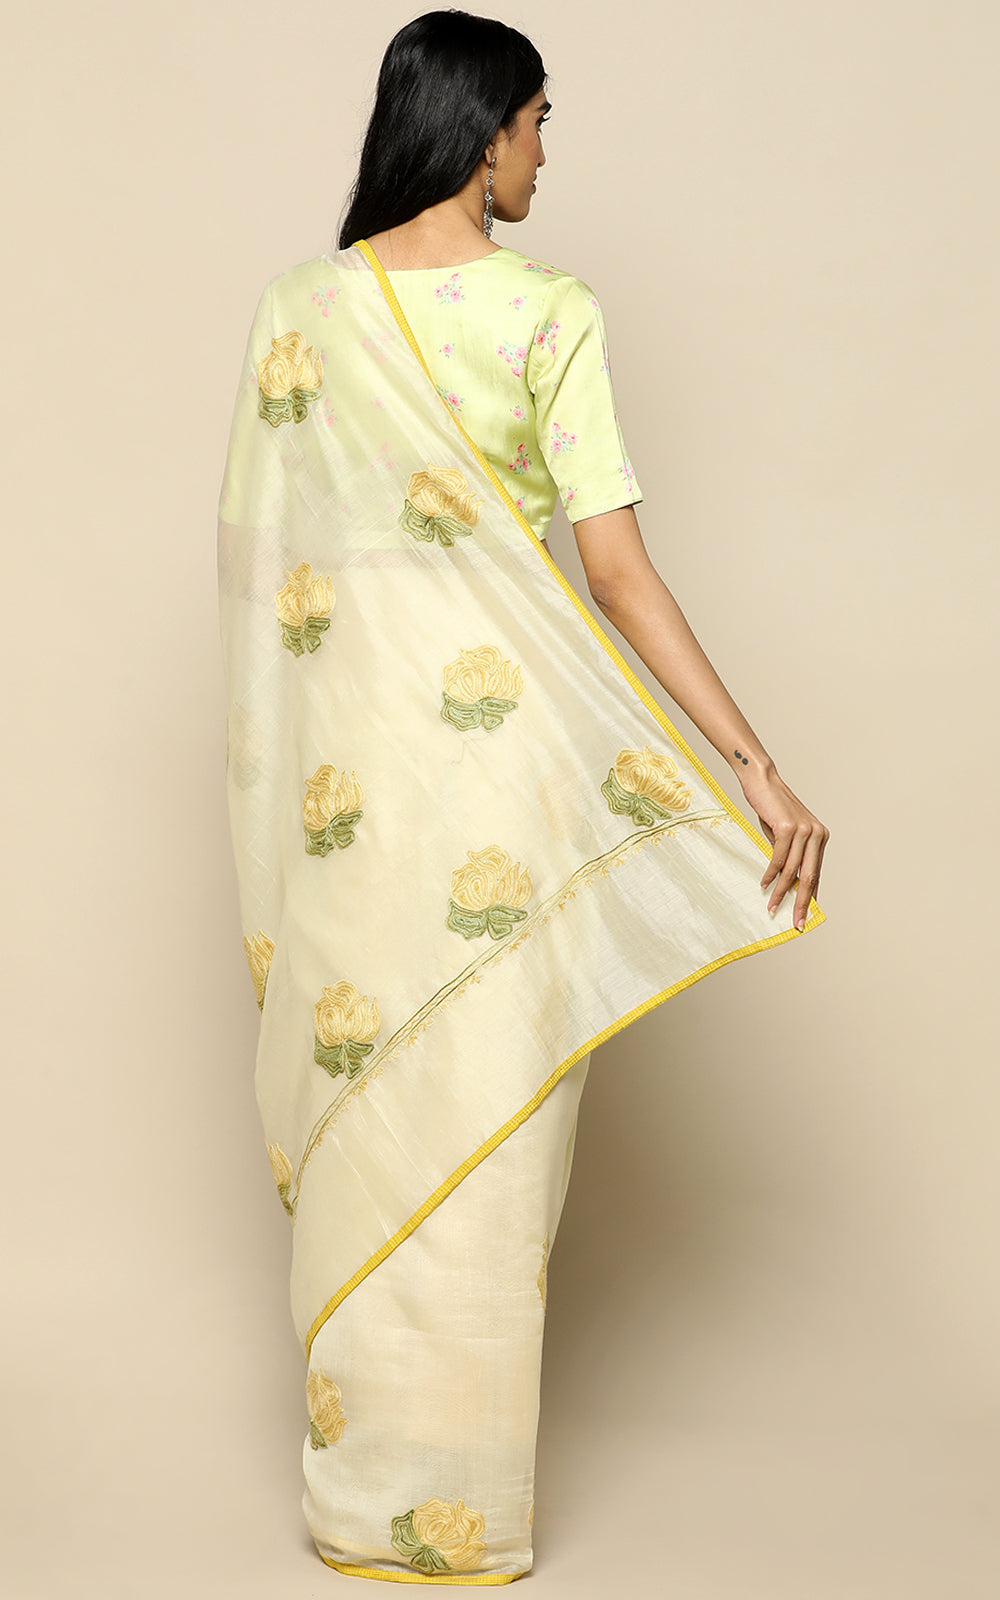 BUTTER YELLOW CHANDERI SILK SAREE WITH KASHMIRI HAND EMBROIDERY